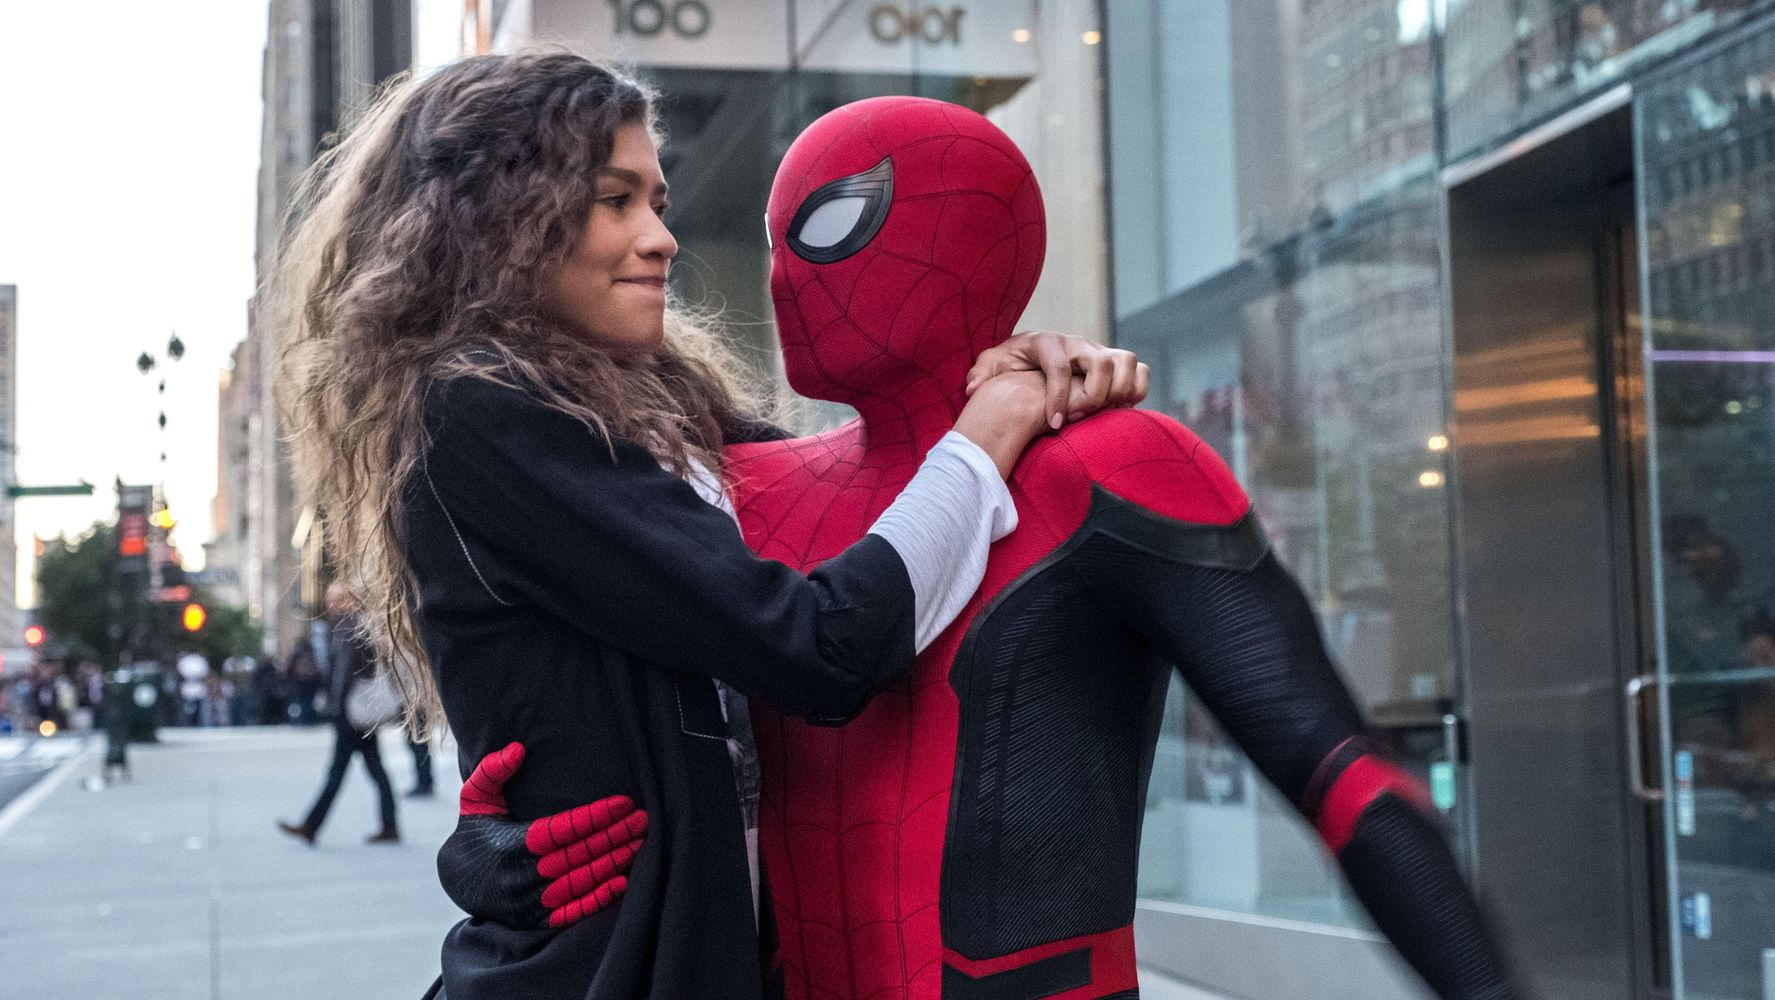 www.huffpost.com: The Fake 'Spider-Man 3' Titles May Secretly Hold A Sinister Reveal